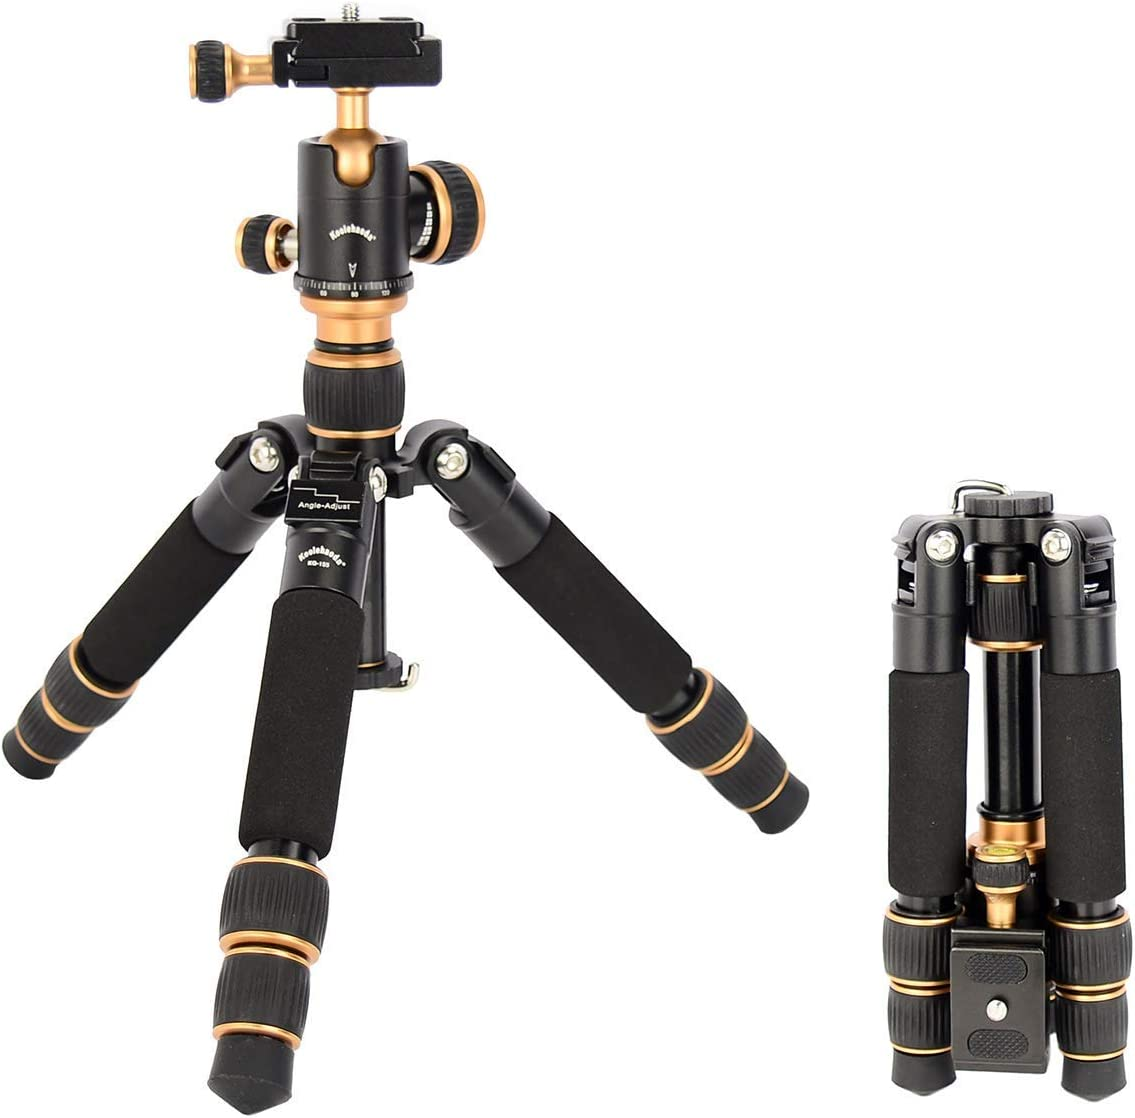 Koolehaoda KQ-155 Travel Portable Mini Tripod Compact Desktop Macro Mini Tripod with Ball Head (KQ-155 Mini Tripod)